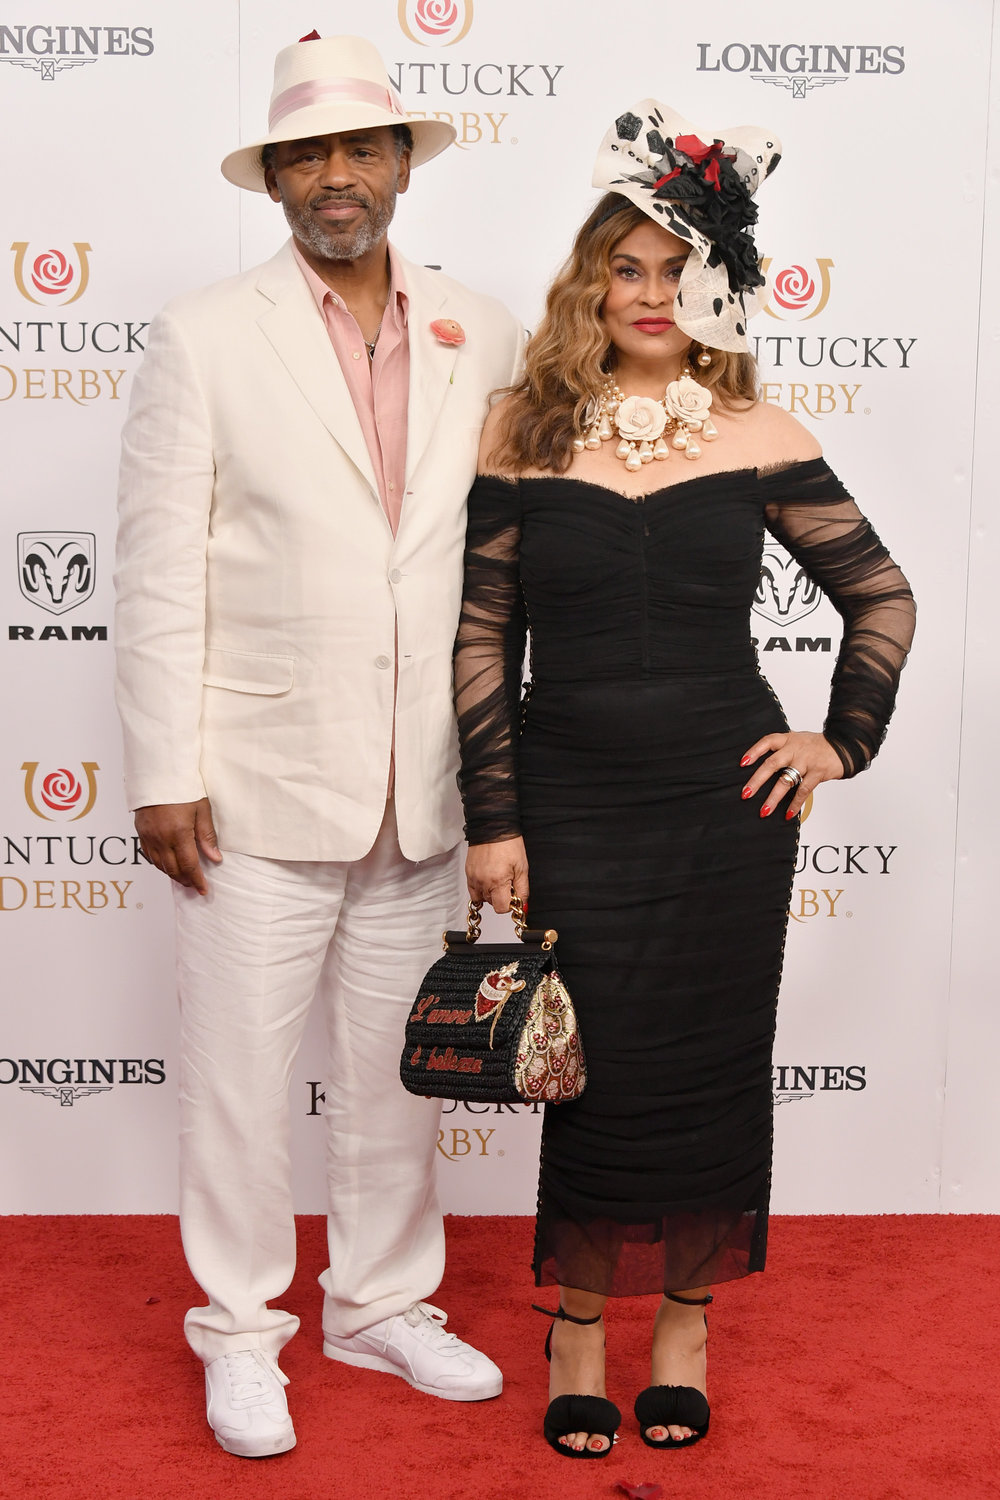 LOUISVILLE, KY - MAY 05: Richard Lawson and Tina Lawson attend Kentucky Derby 144 on May 5, 2018 in Louisville, Kentucky.  (Photo by Michael Loccisano/Getty Images for Churchill Downs) *** Local Caption *** Richard Lawson;Tina Lawson